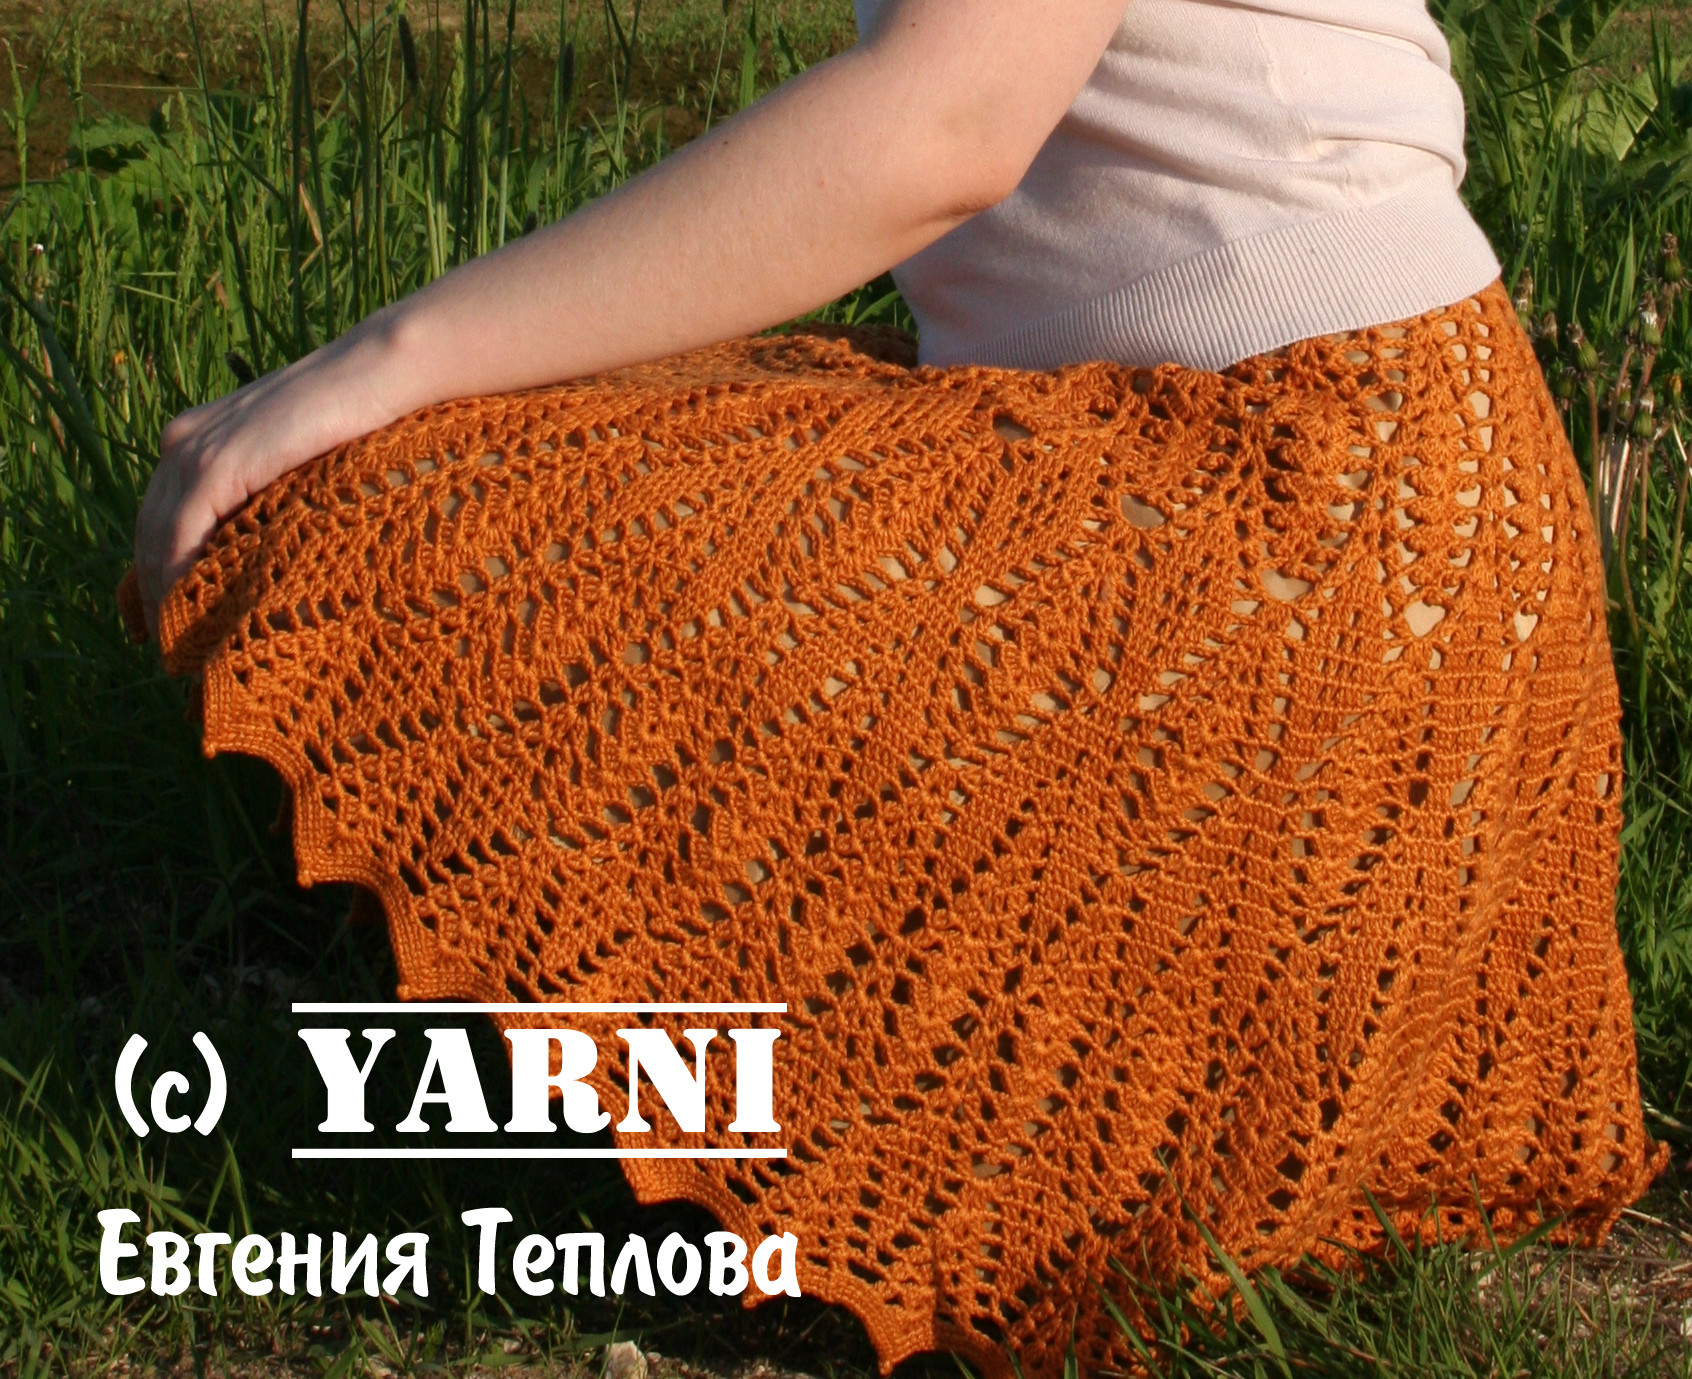 Crochet Skirt Patterns Lovely orange Crochet Skirt Pattern Free ⋆ Crochet Kingdom Of Fresh 47 Ideas Crochet Skirt Patterns